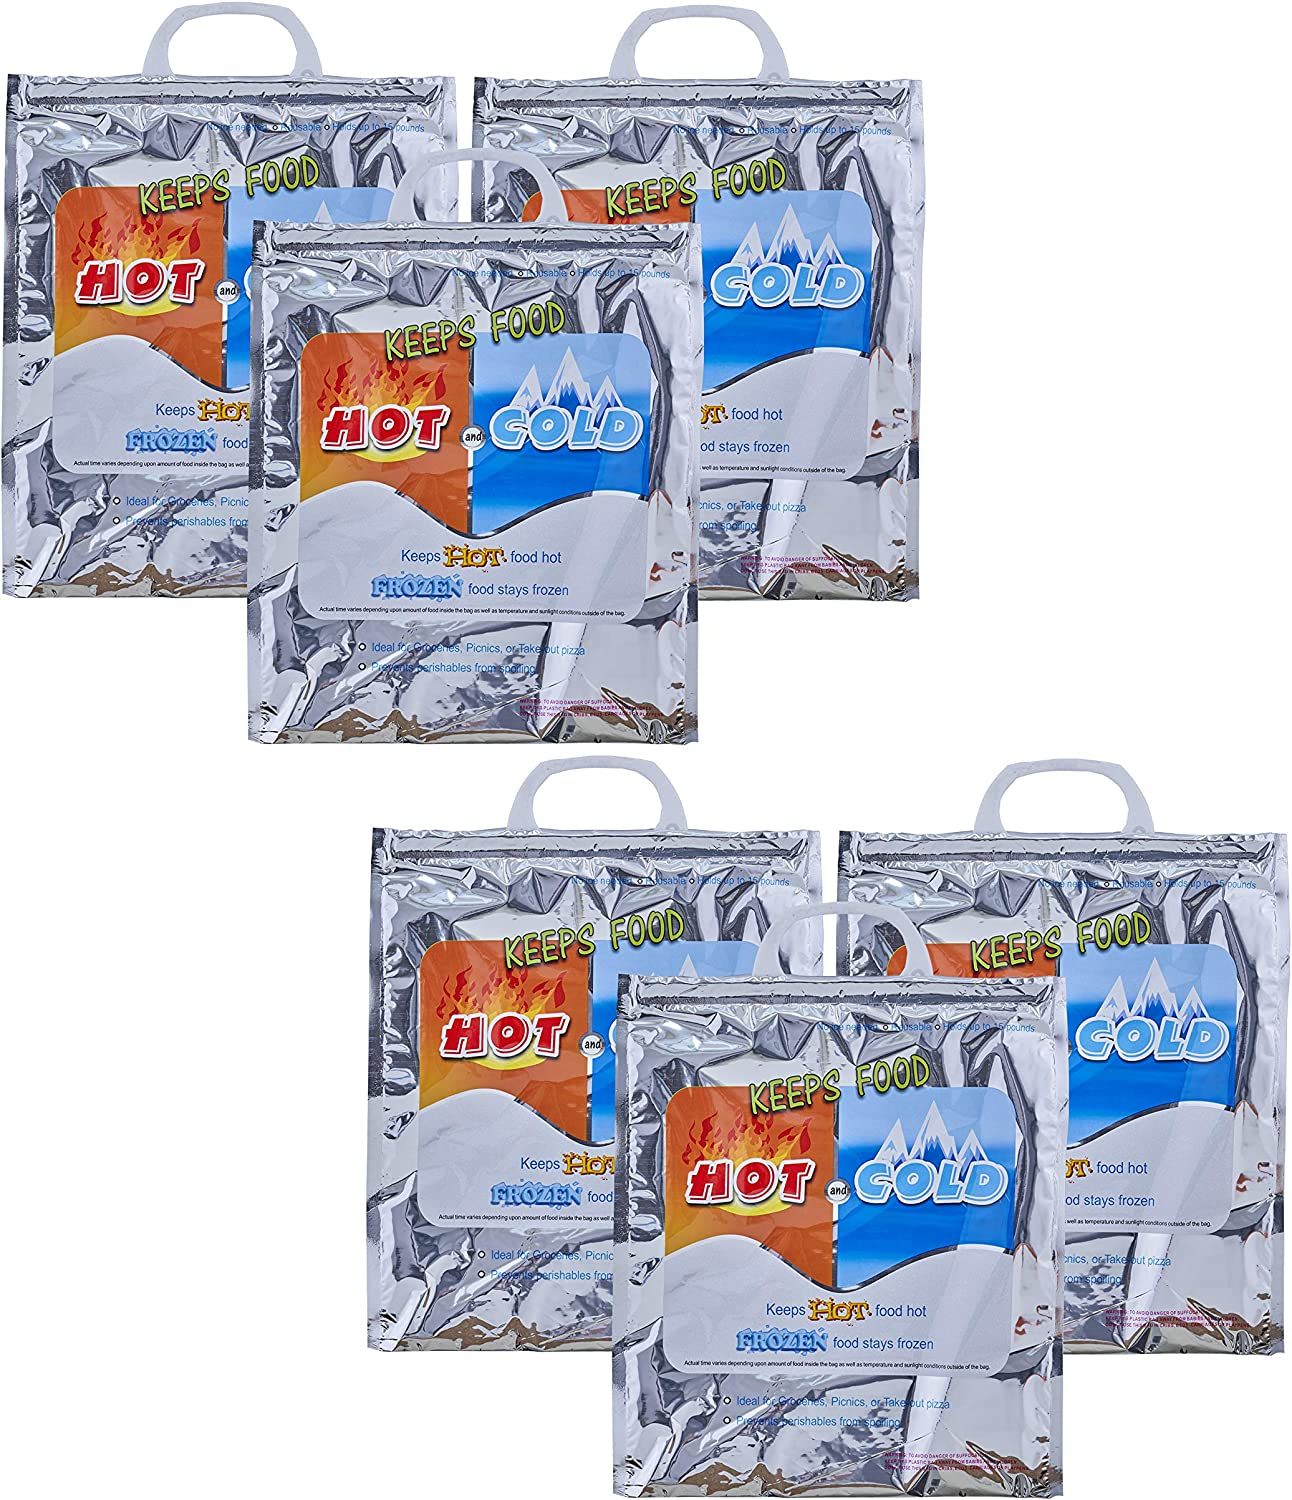 Superio Hot and Cold Reusable Insulated Bag Food Storage for Frozen Items & Hot Items Including Lunch Bags & Grocery Shopping Bags Reinforced Heavy Duty Refrigerated Totes (6, 12